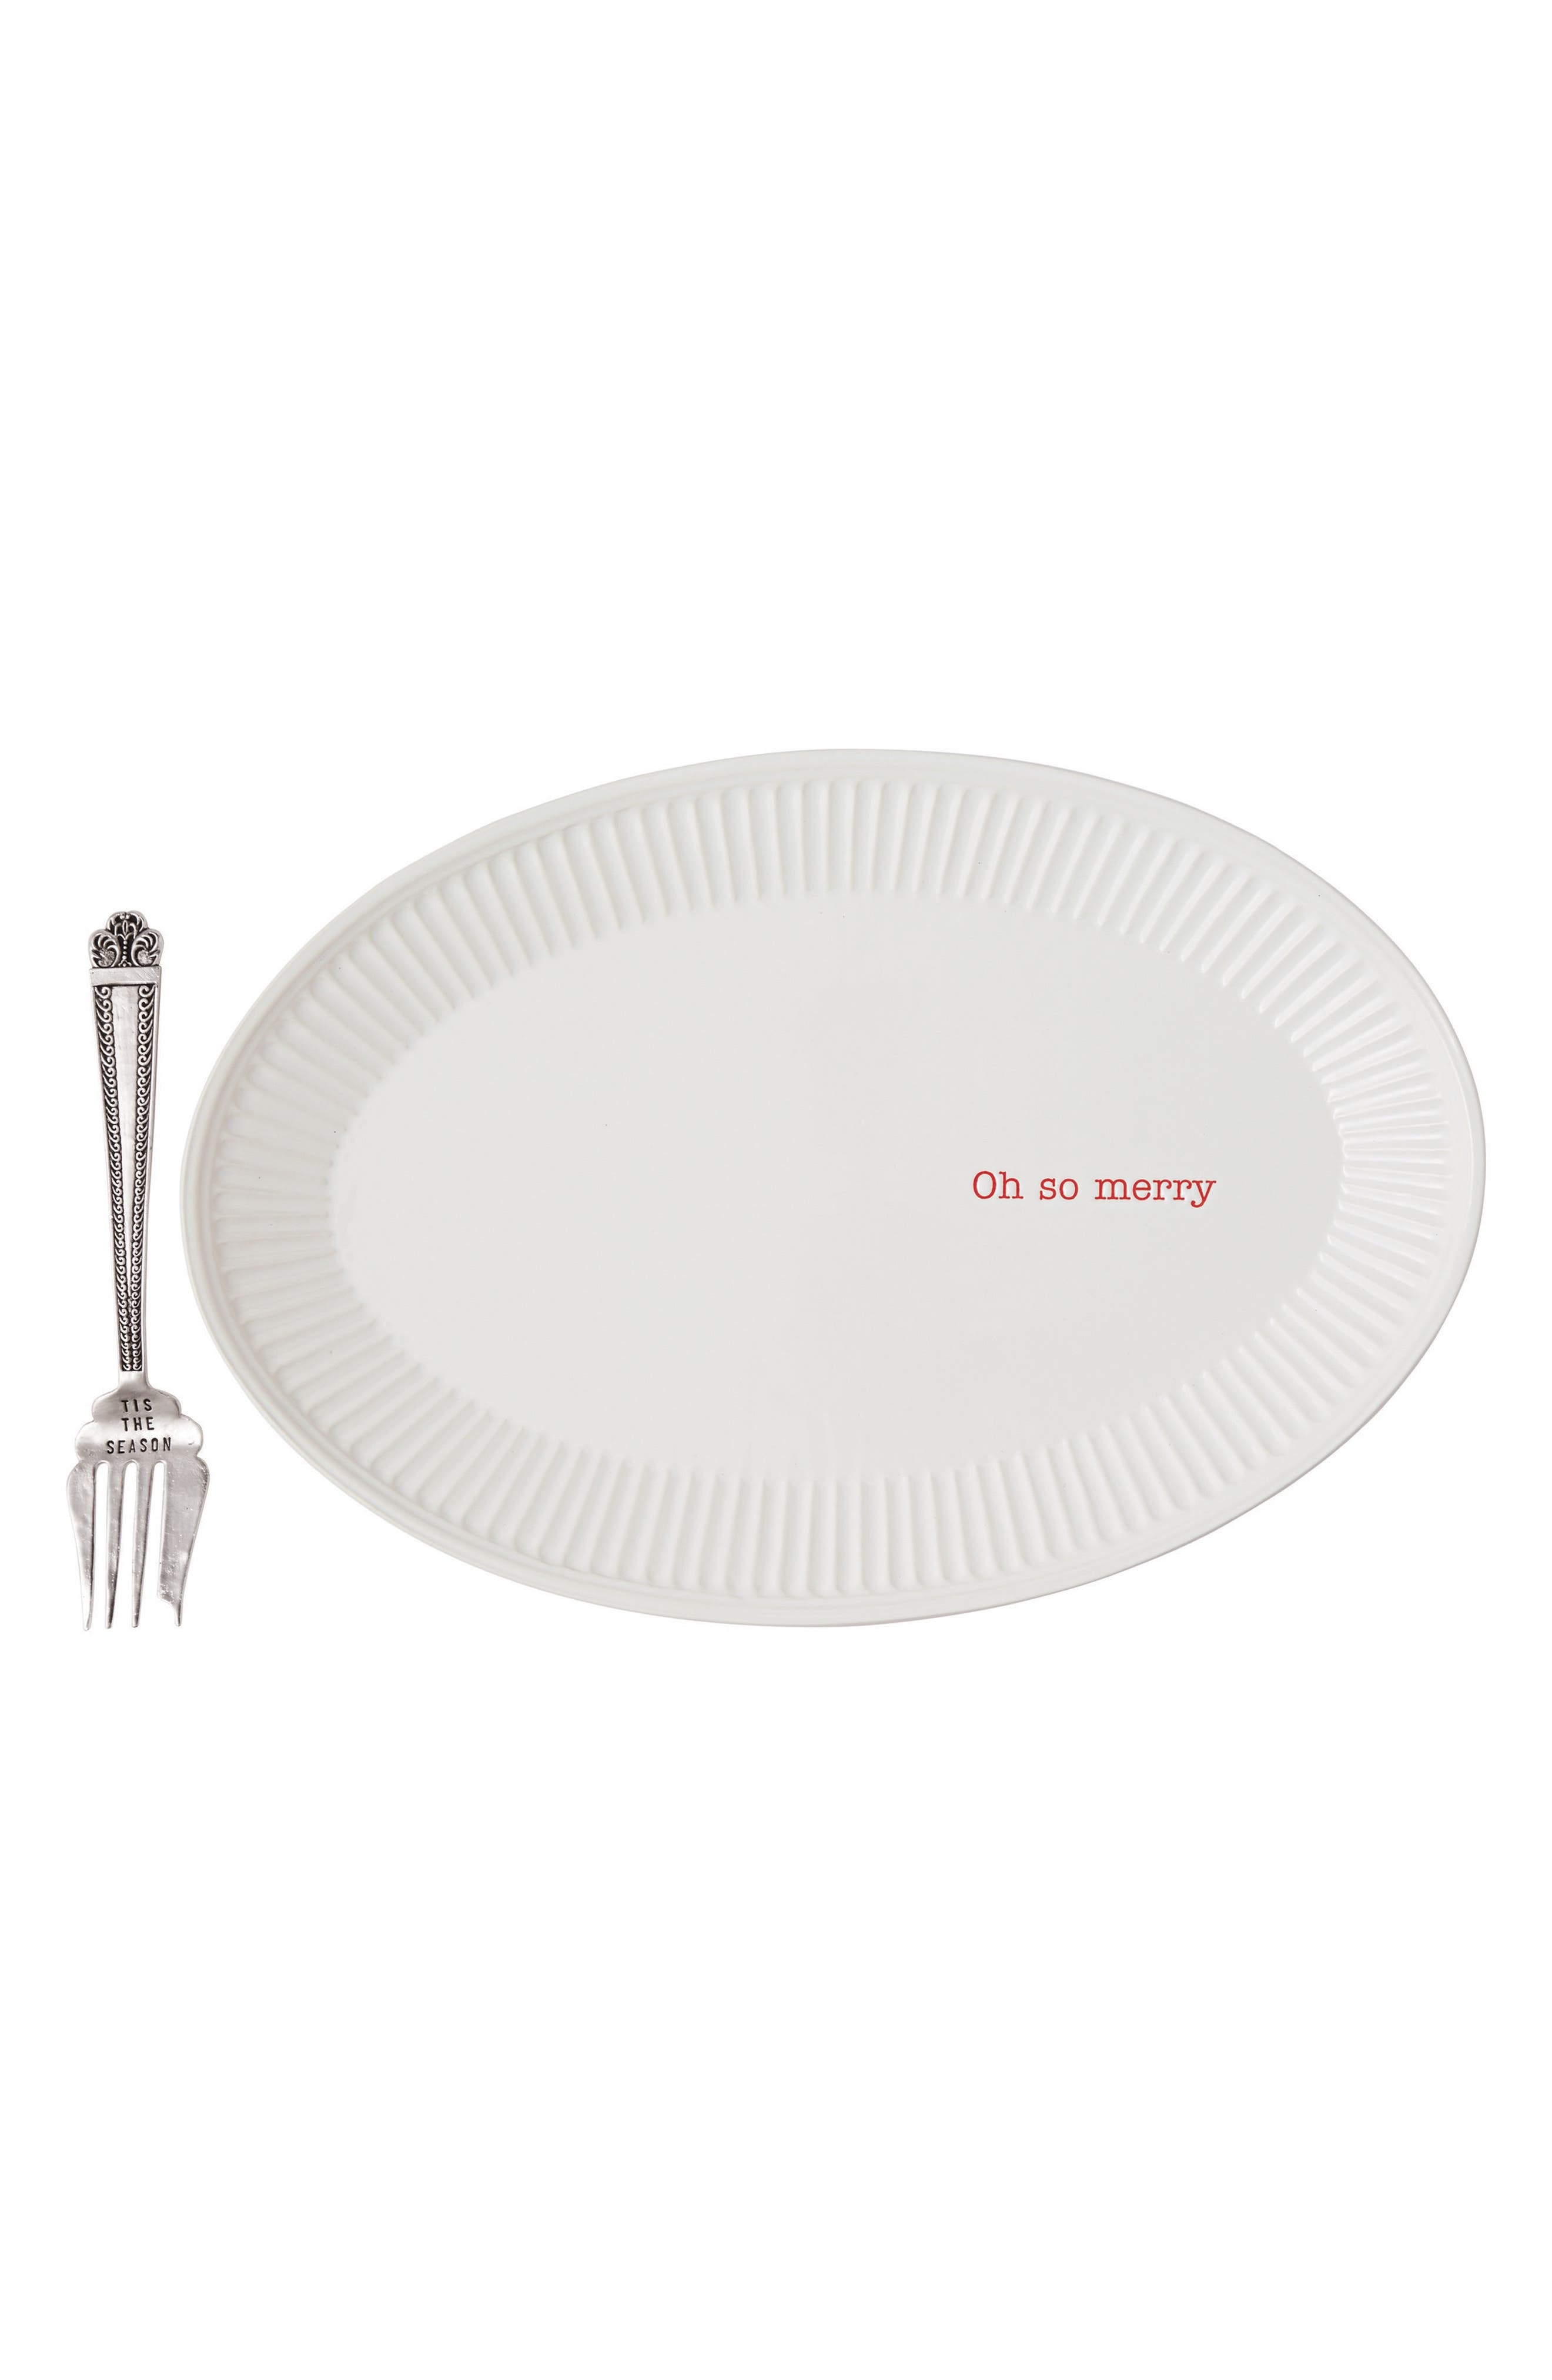 Alternate Image 1 Selected - Mud Pie Oh So Merry Ceramic Platter & Serving Fork